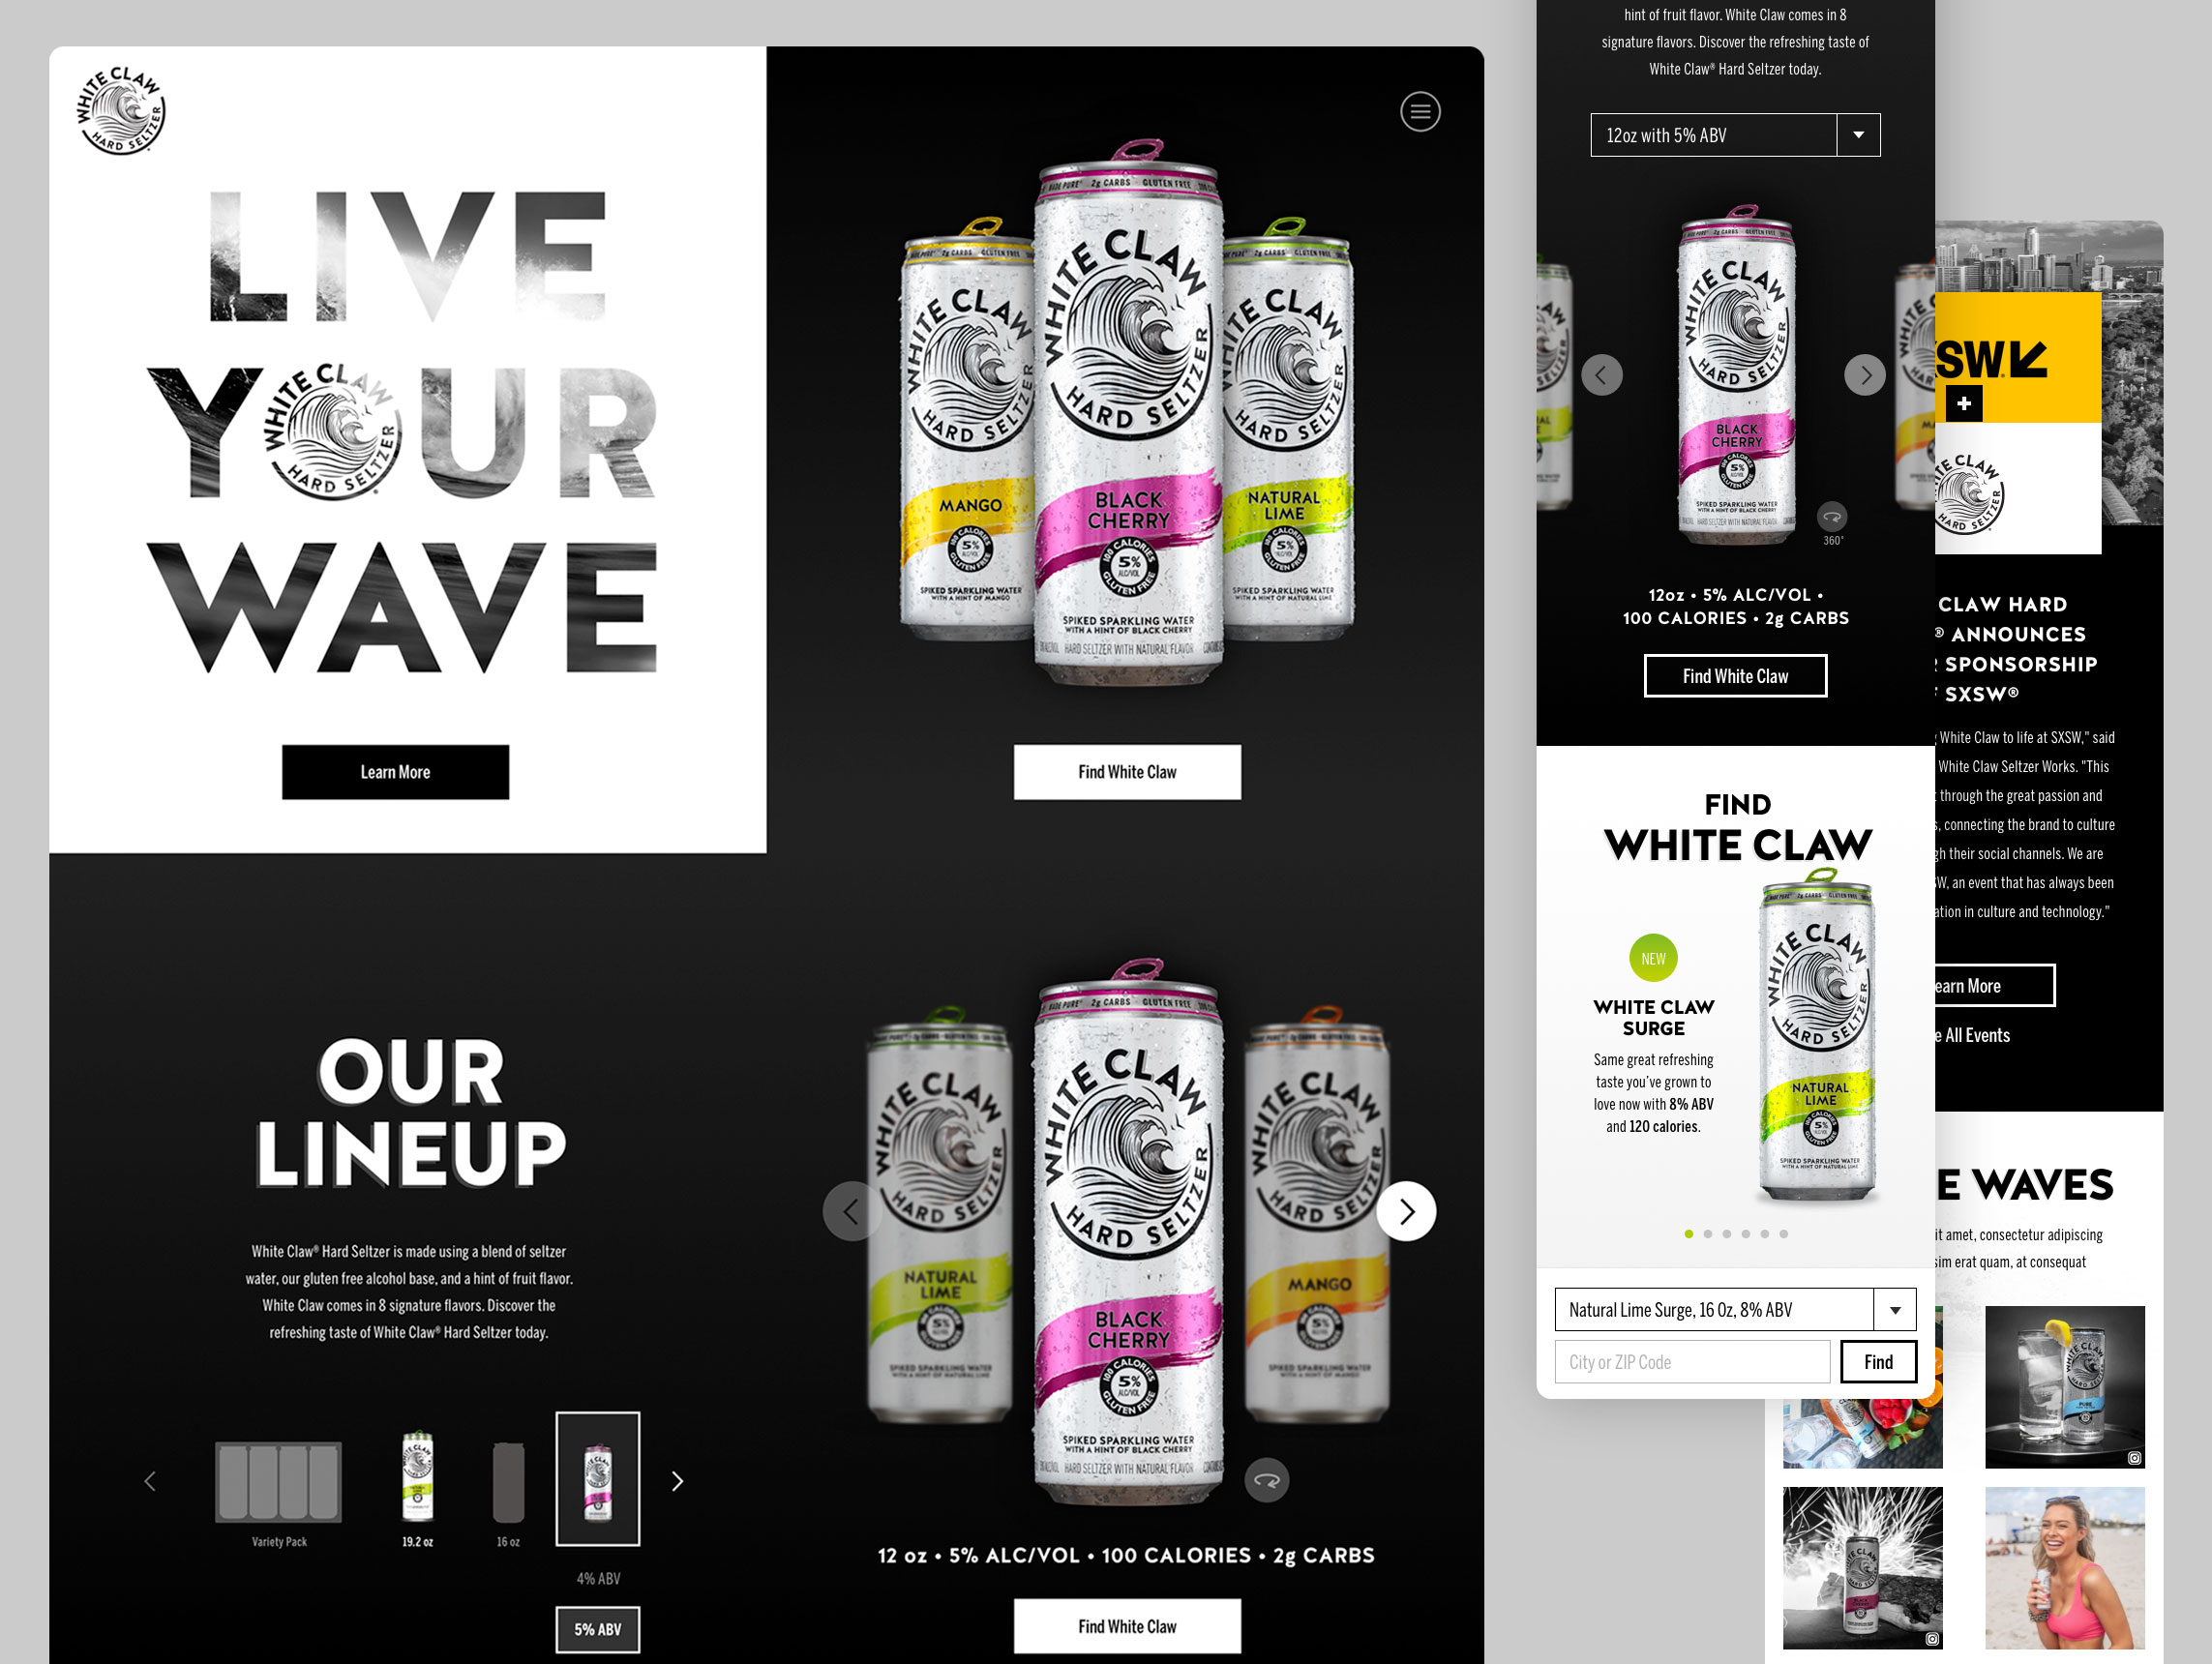 White Claw Hard Seltzer new website design and UI/UX work by Agency Squid creative advertising agency